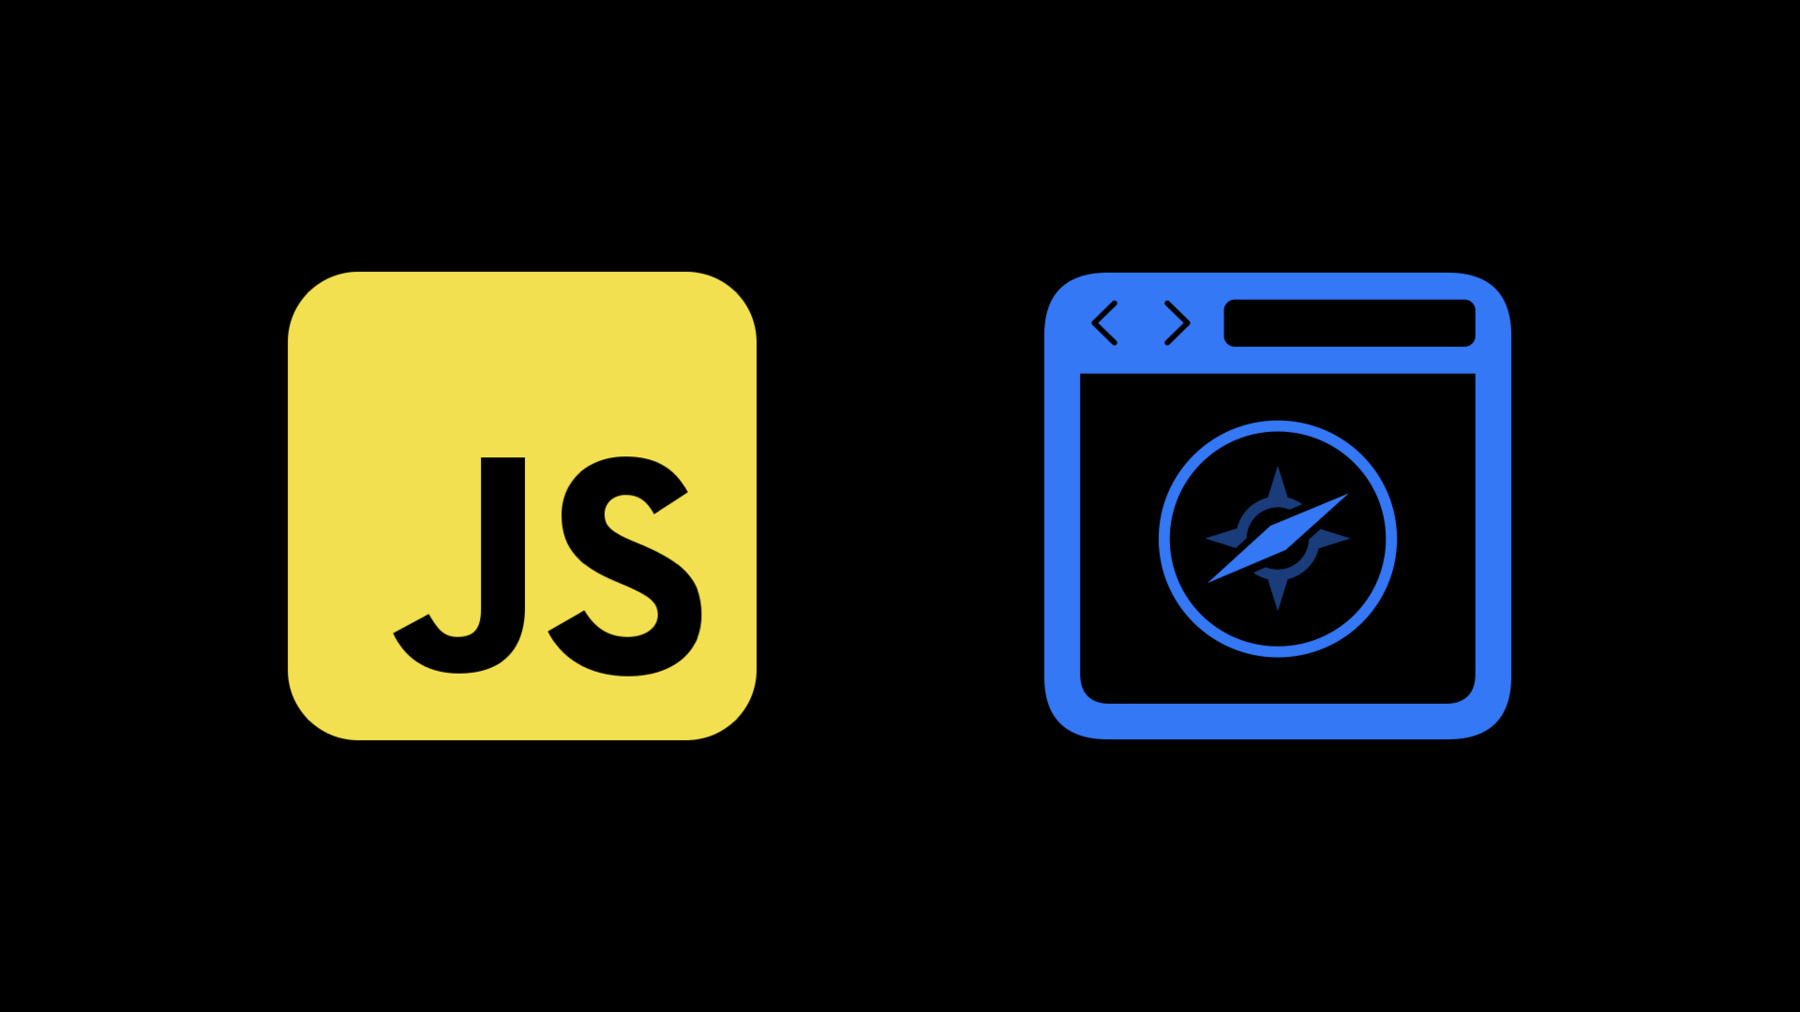 JS logo and a browser-like web view